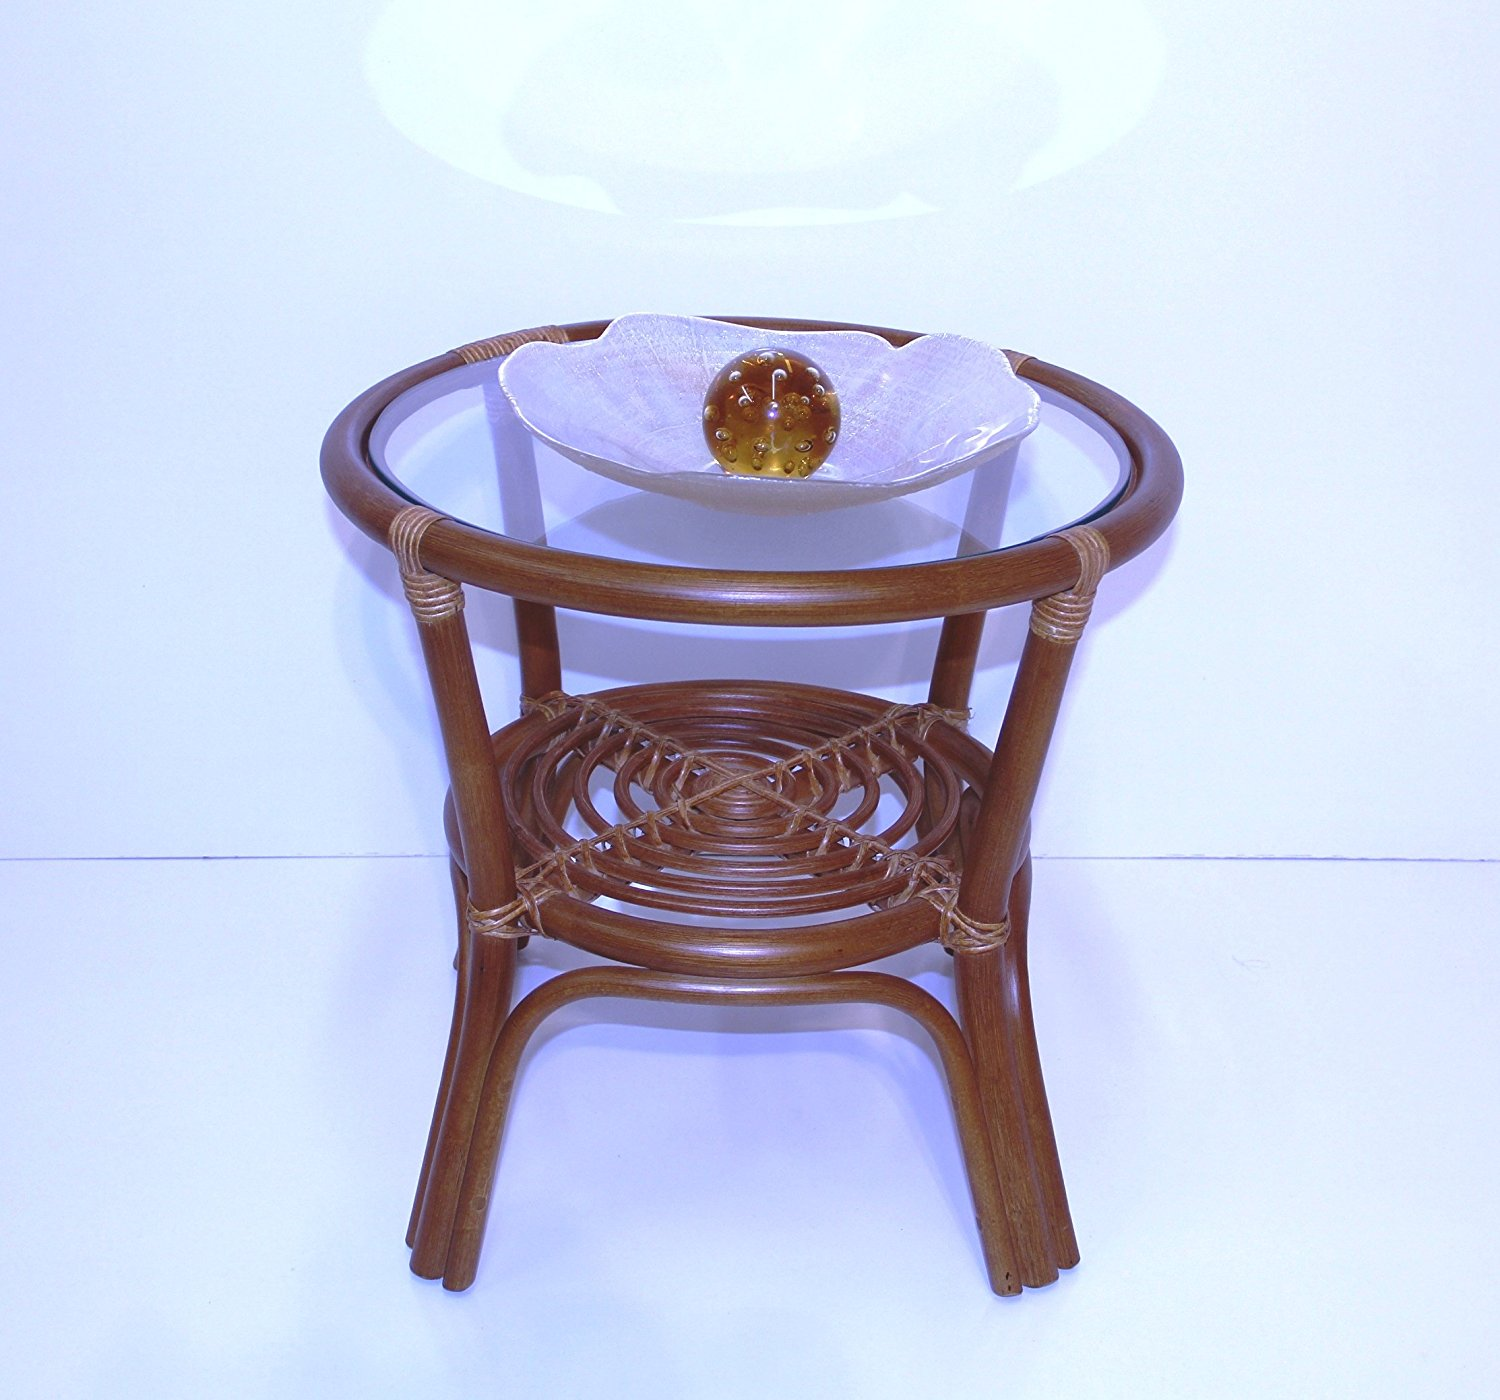 unique living room side table design small round end tables rattan wicker accent traditional style natural material cognac finish bottom storage shelf with drawer full size chairs